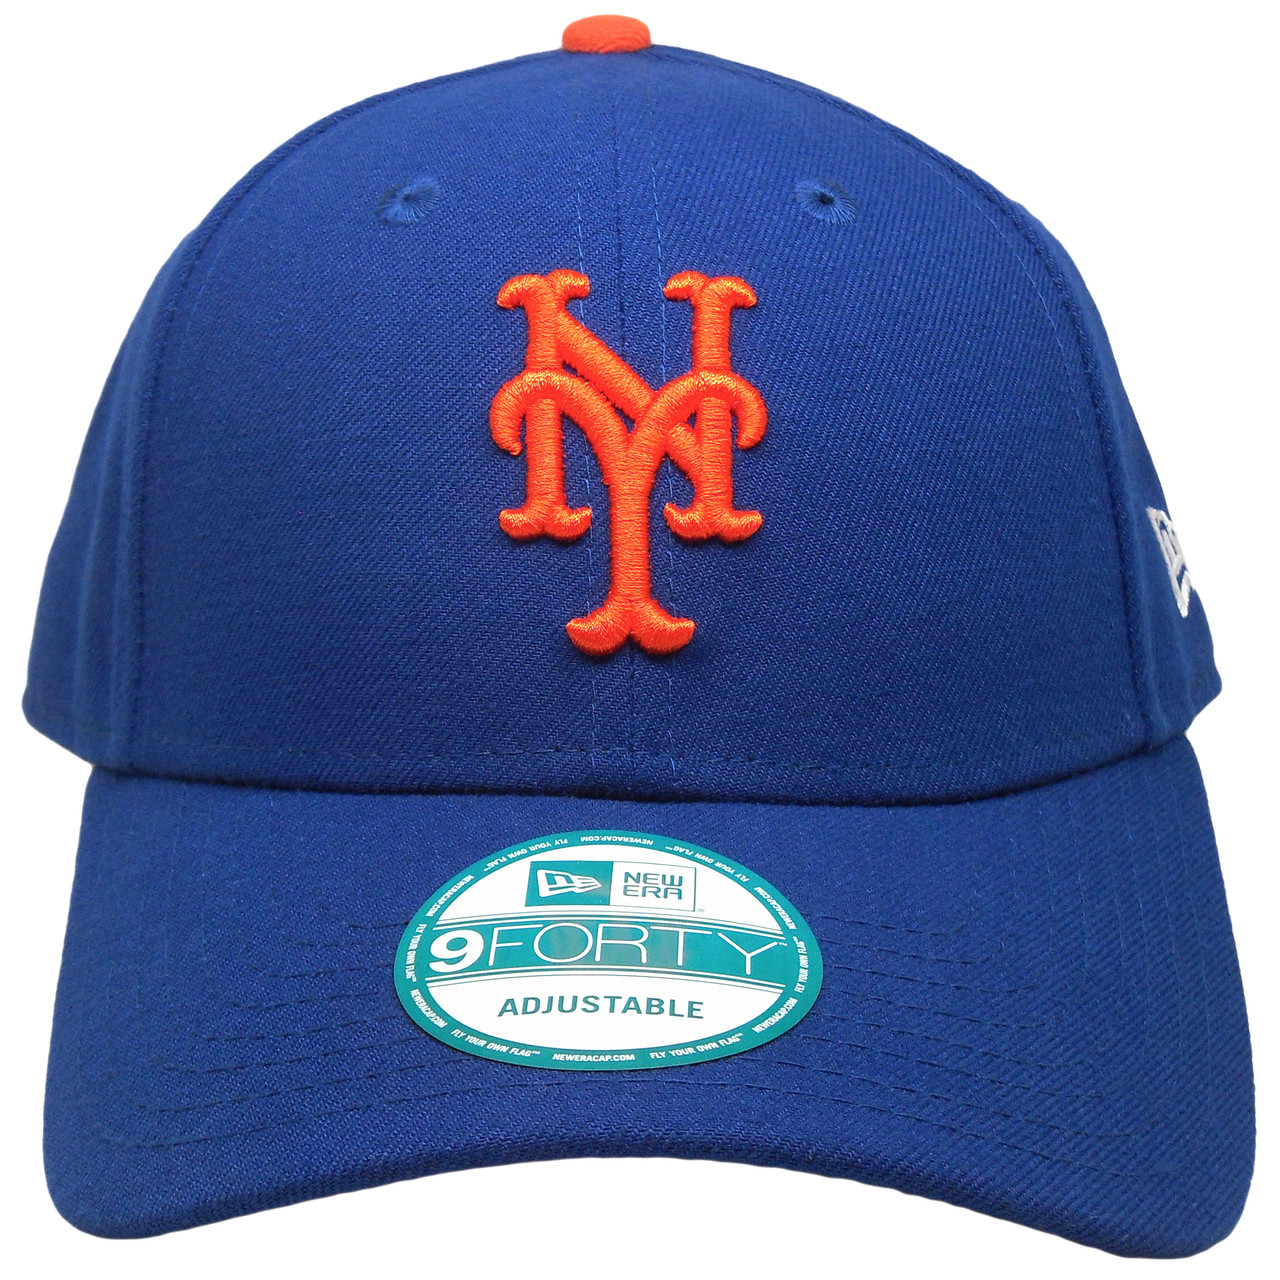 timeless design 6dff3 e89be New York Mets The League 9Forty Adjustable Hat - Royal, Orange -  ECapsUnlimited.com